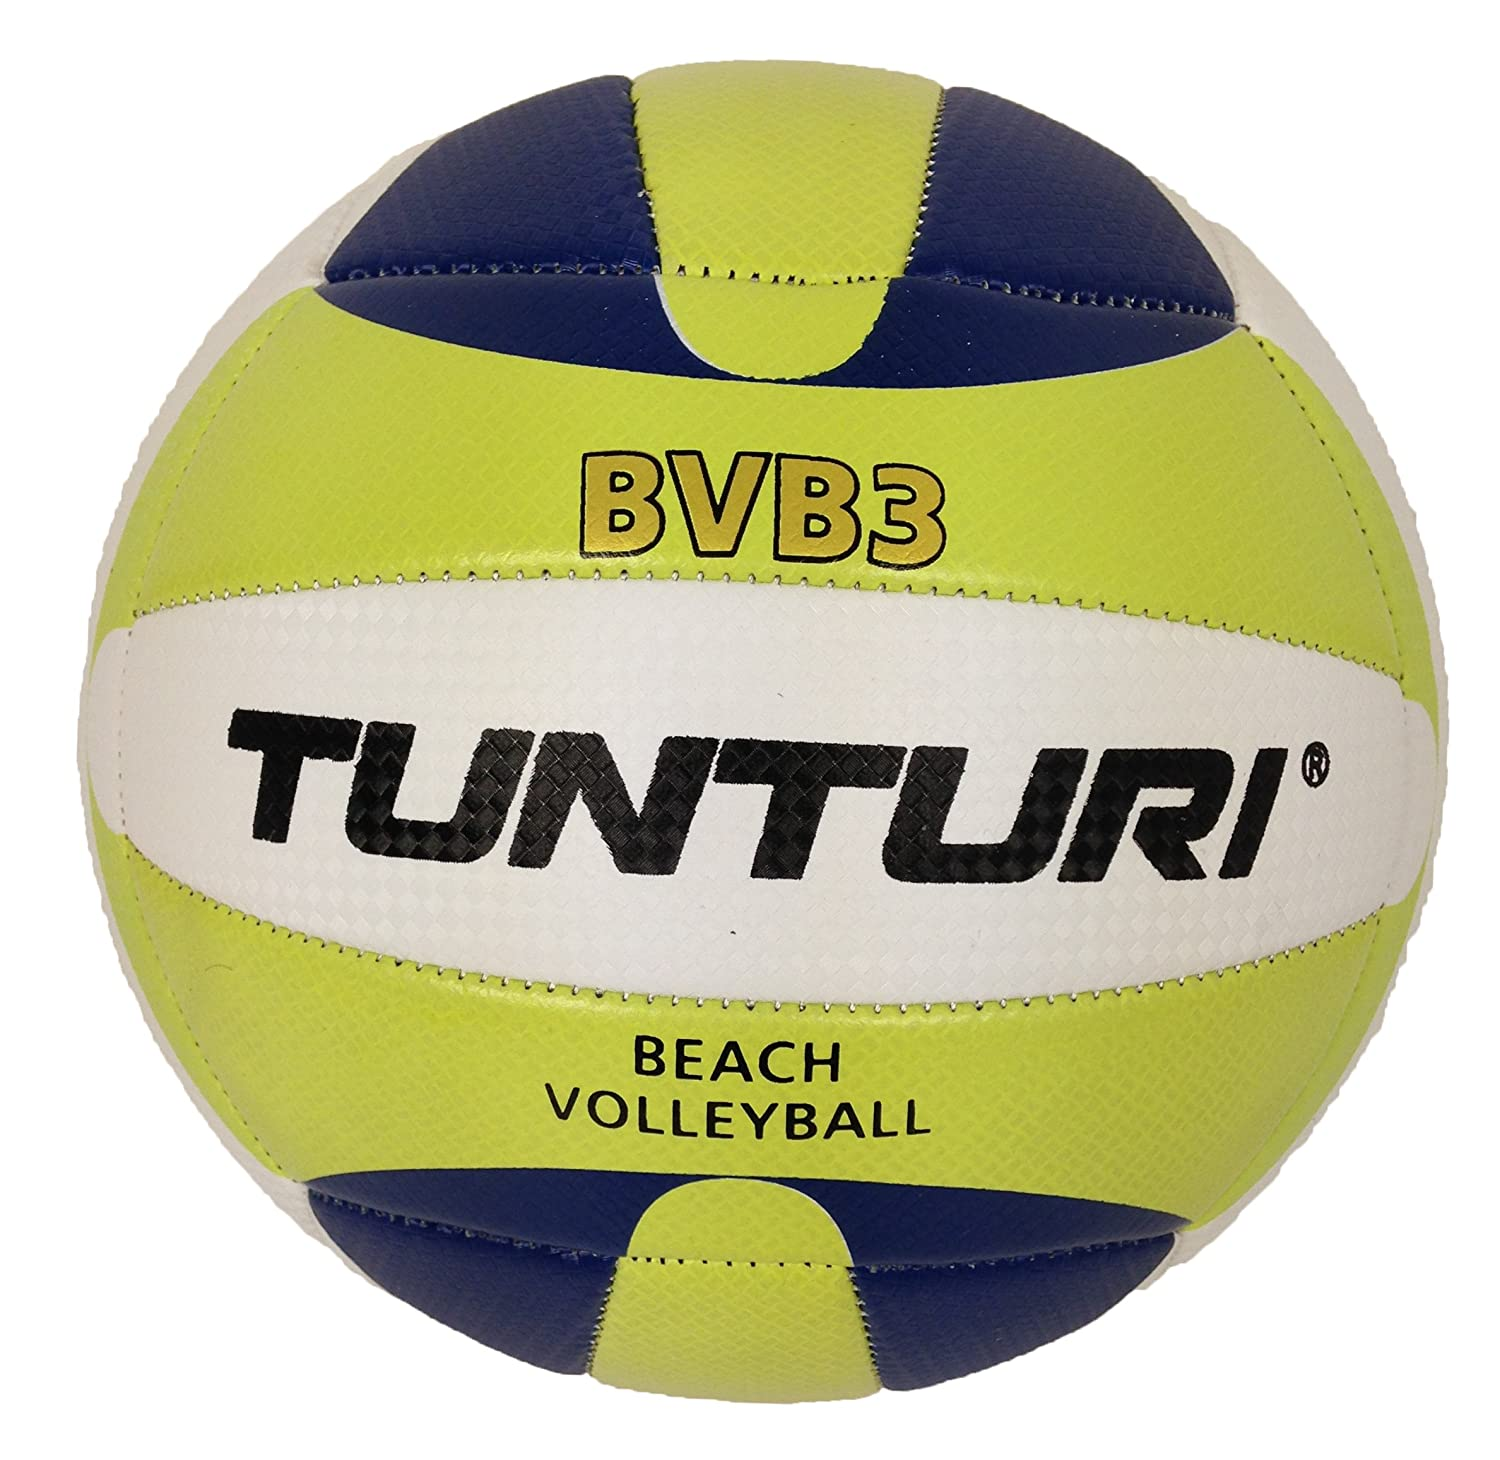 Tunturi 14TUSTE106 Ballons de Beach-Volley Mixte Adulte, Multi Couleur, 1